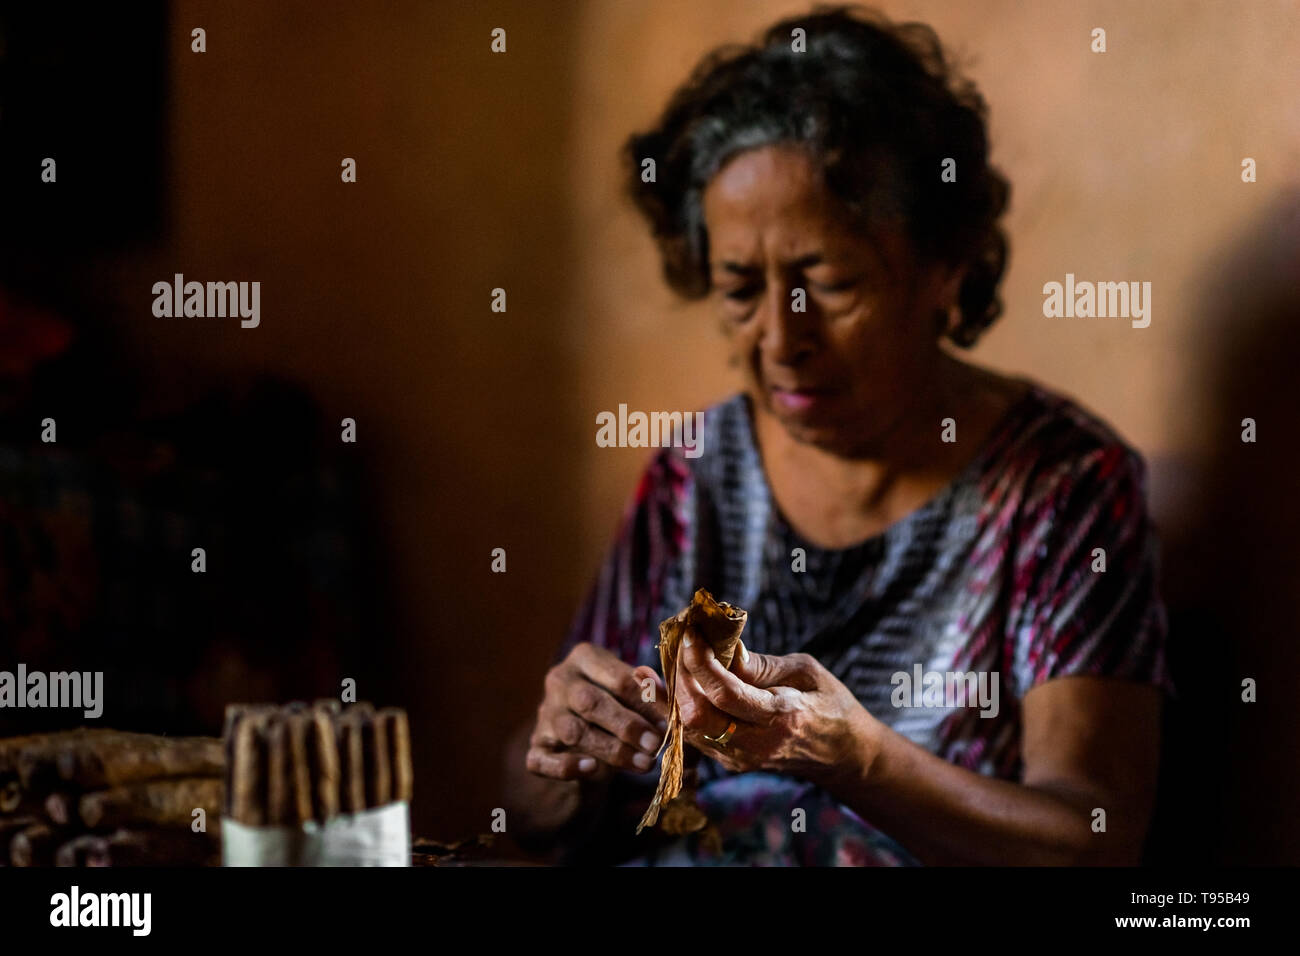 Laura Peña, a 67-years-old Salvadoran woman, rolls tobacco leaves to make handmade cigars in her house in Suchitoto, El Salvador. - Stock Image